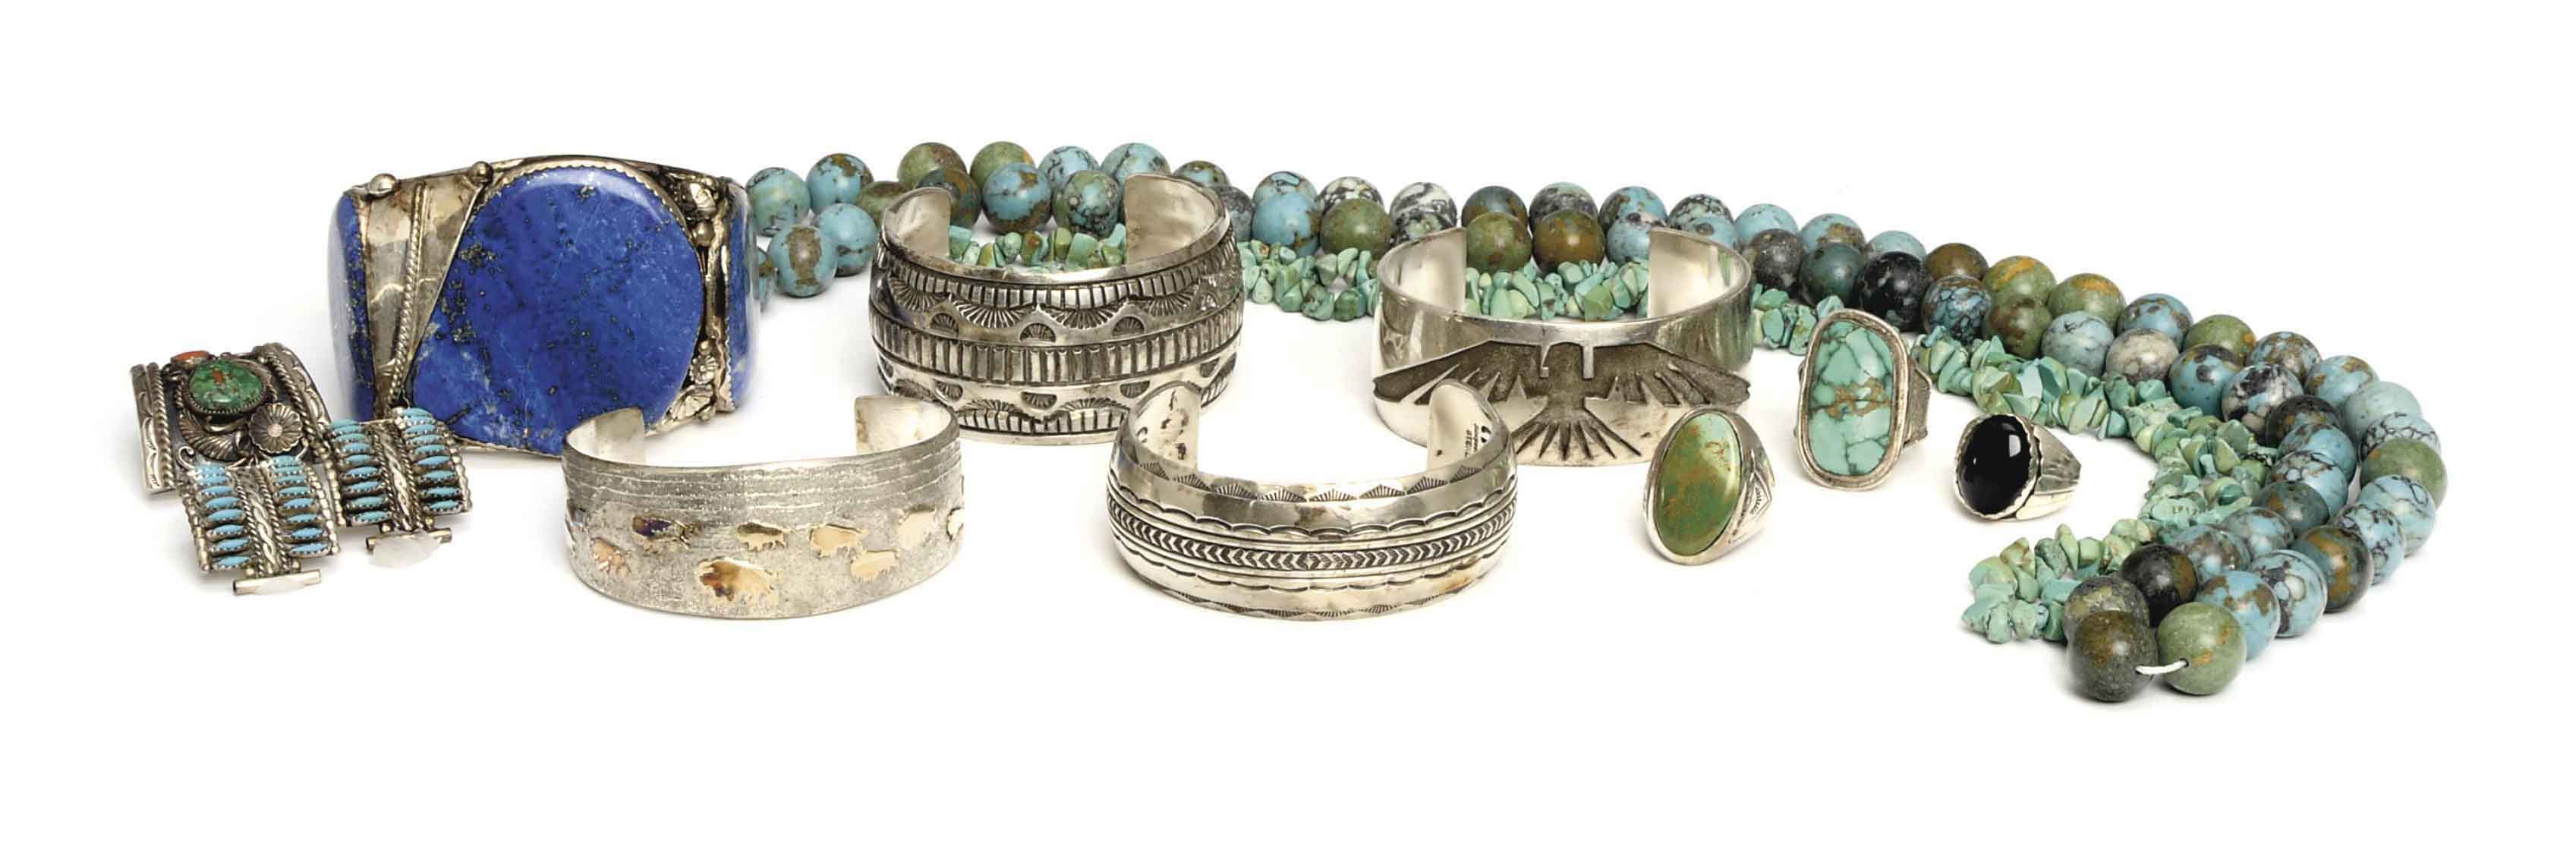 A LARGE GROUP OF SILVER AND SILVERED METAL SOUTHWESTERN-STYLE JEWELRY,